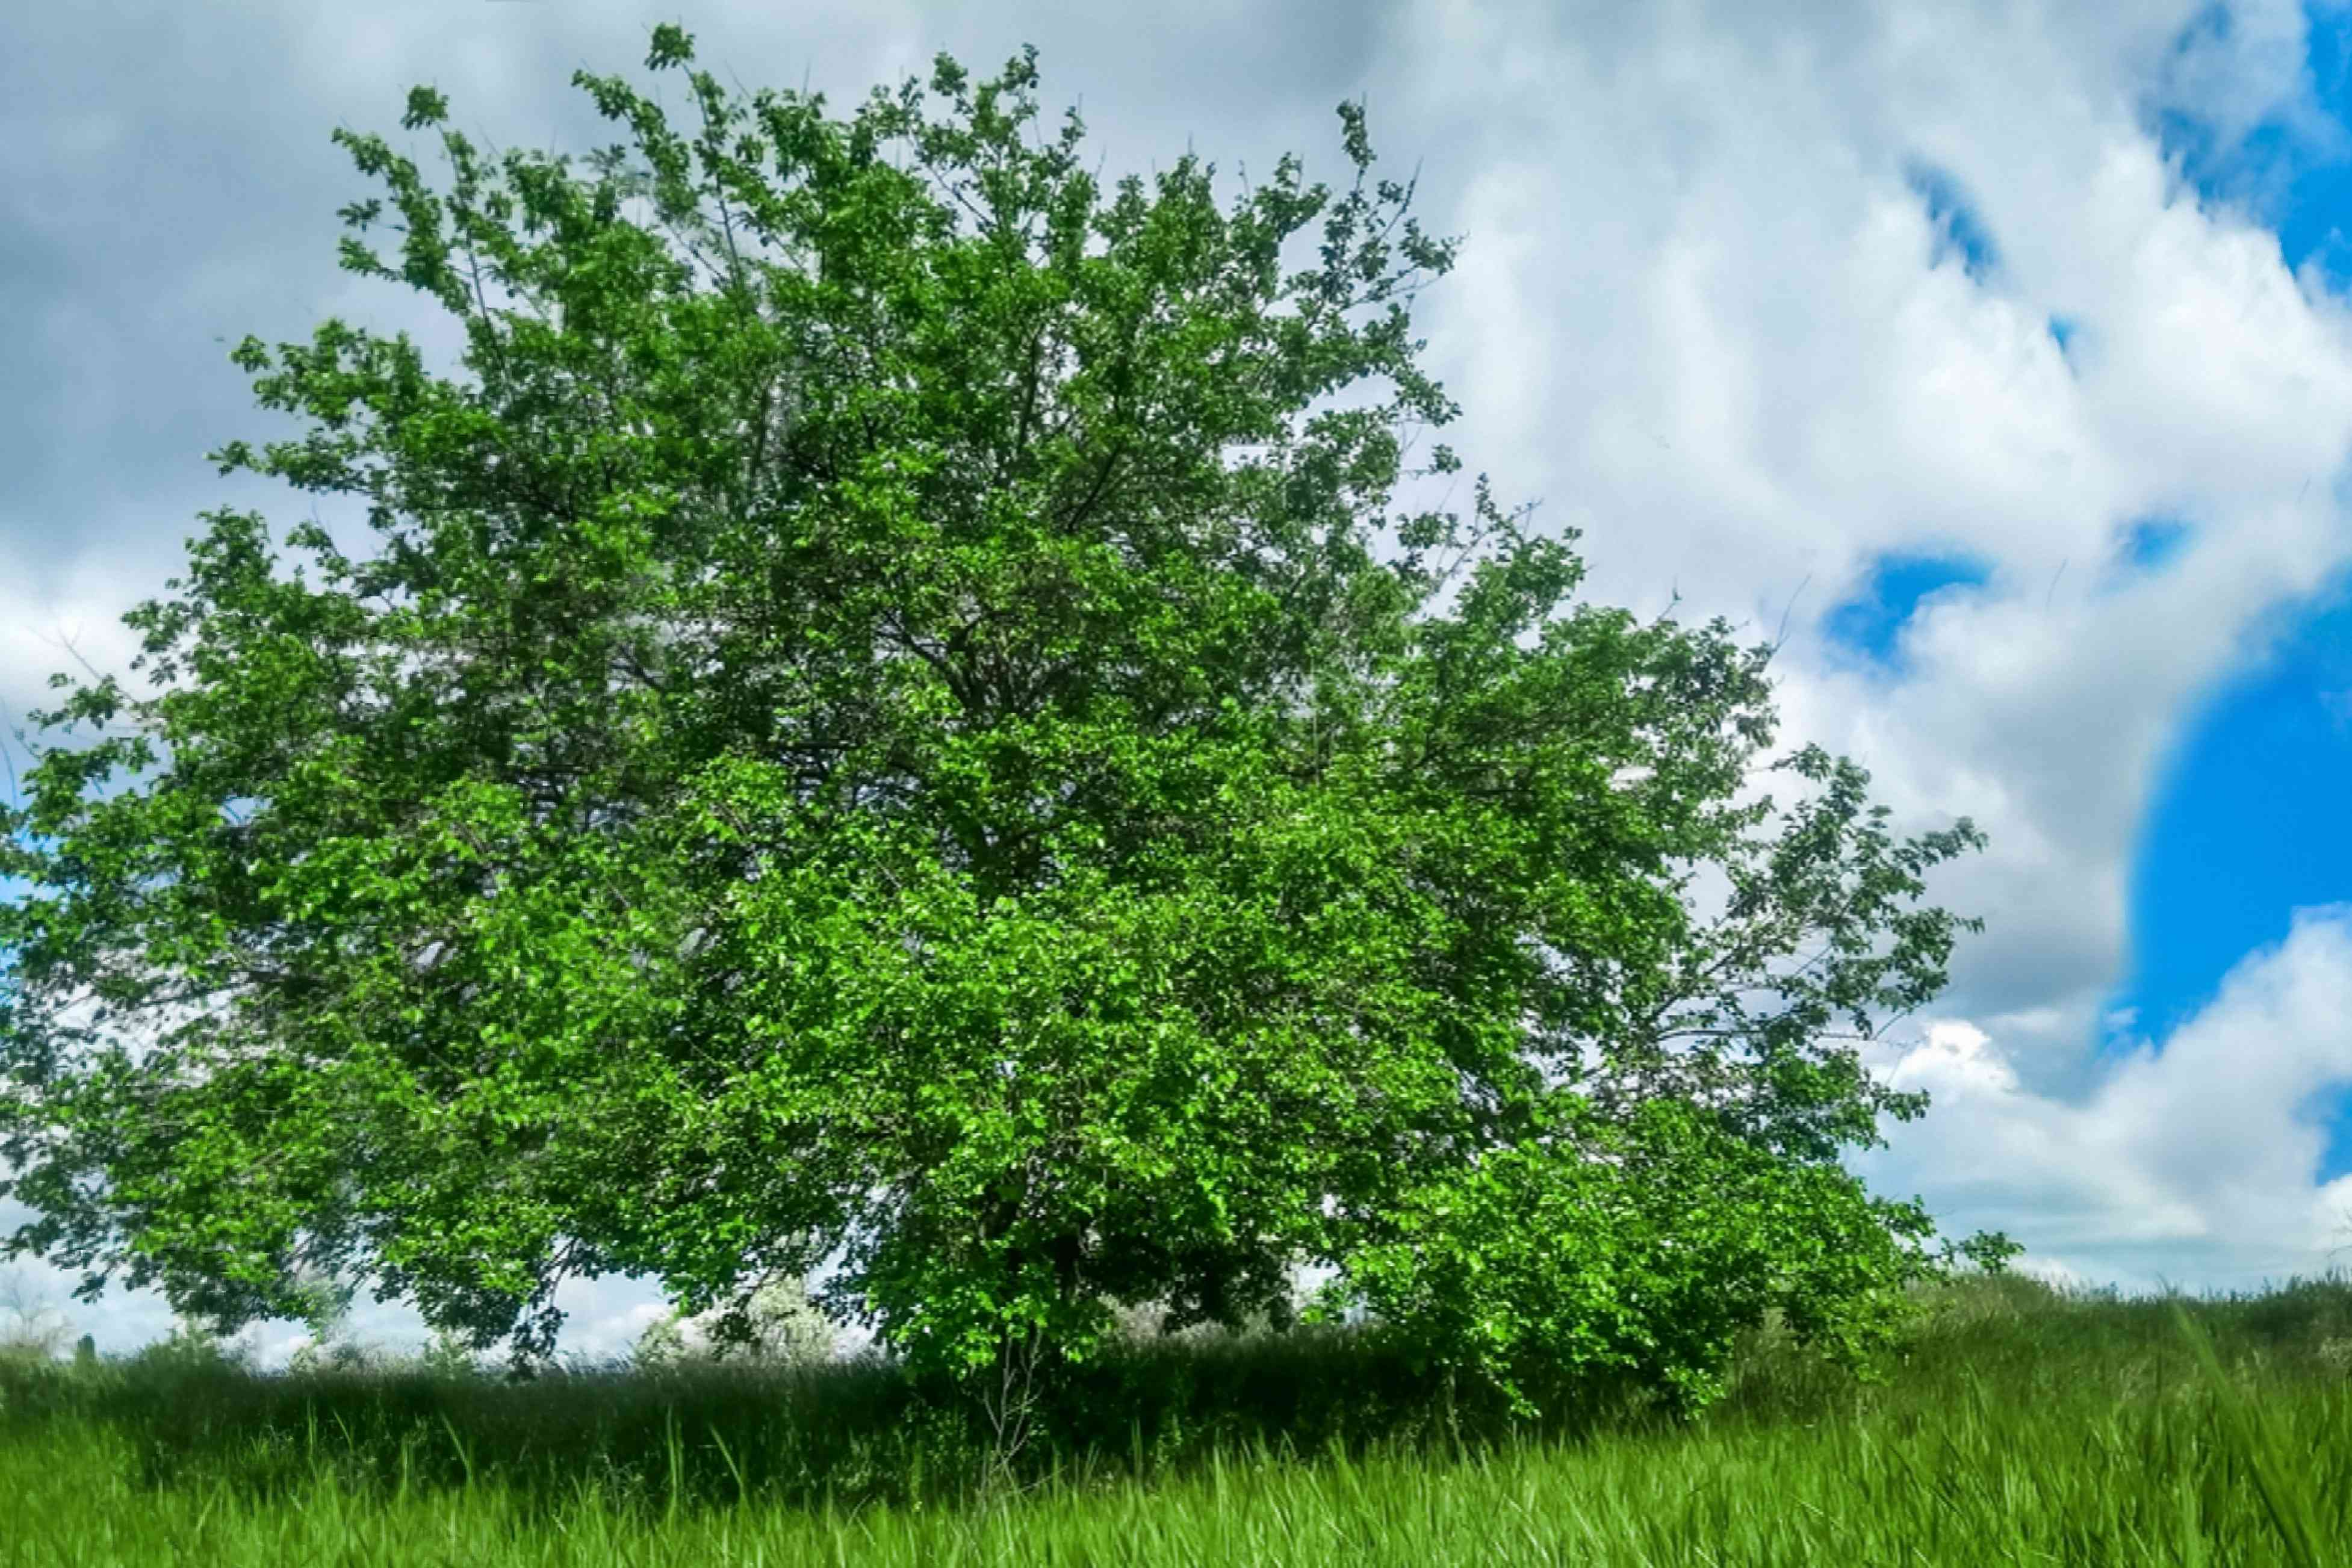 Mulberry tree with bright green leaves in middle of field